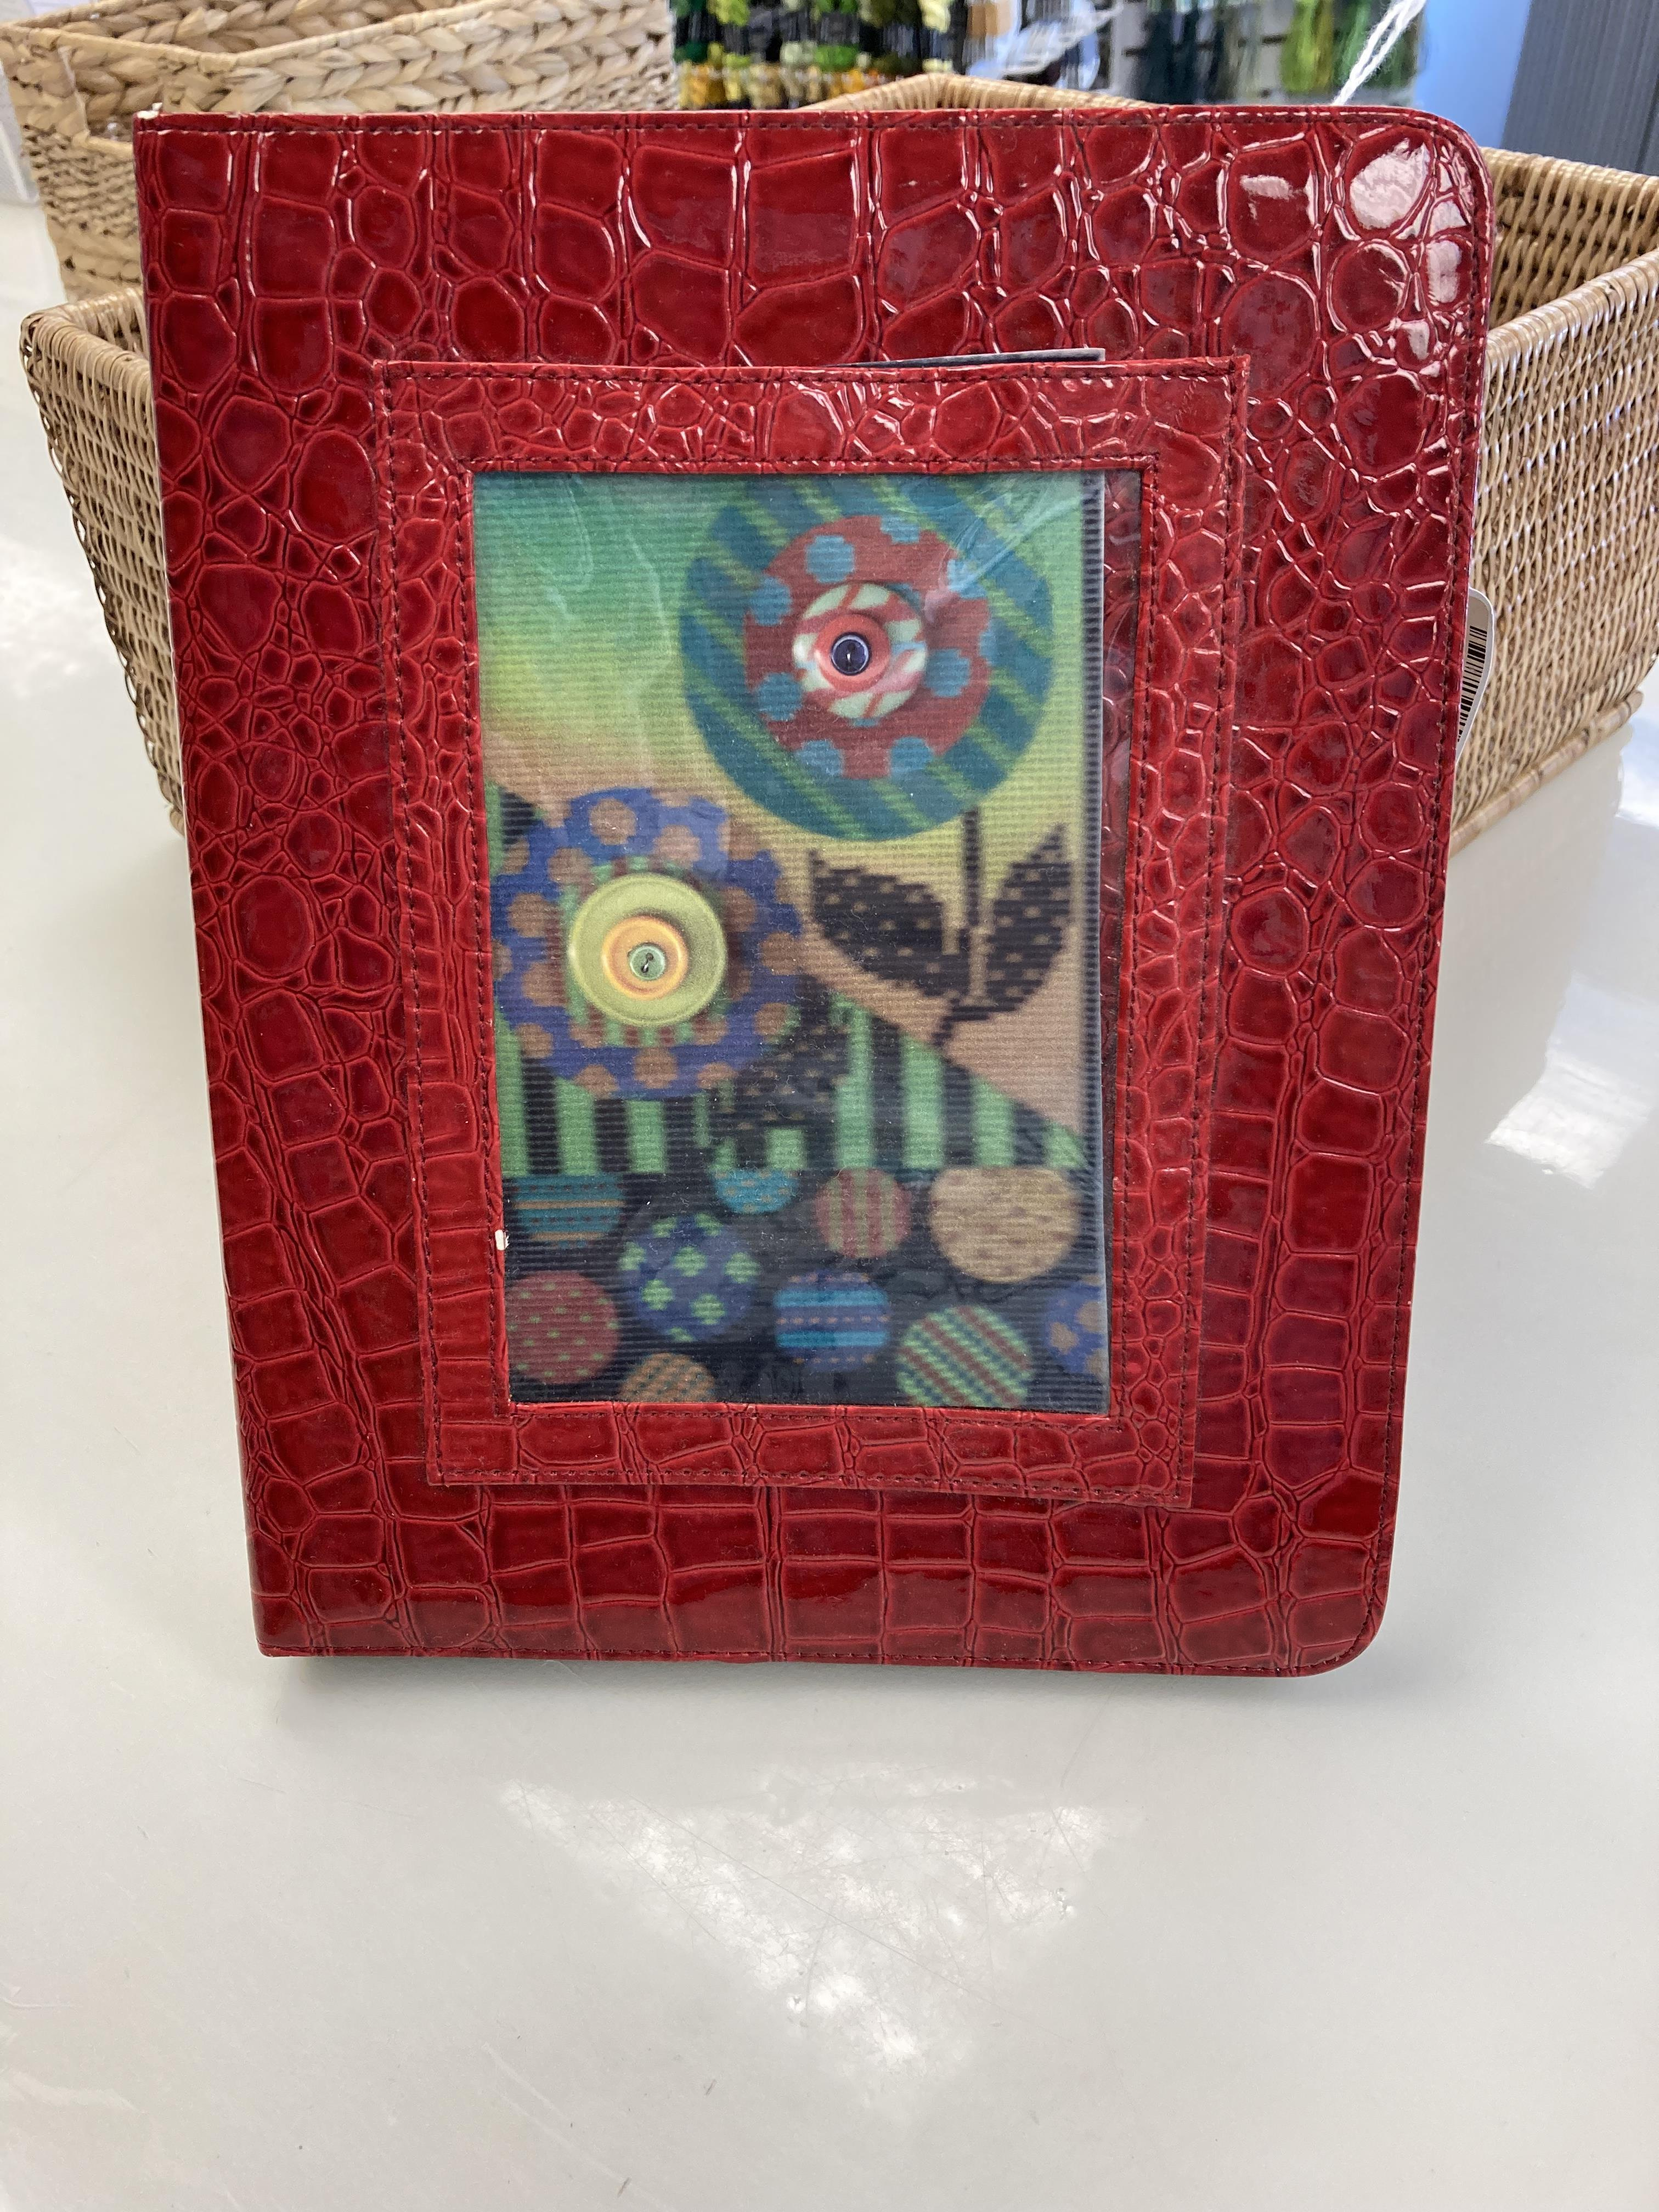 Ipad Cover - Red